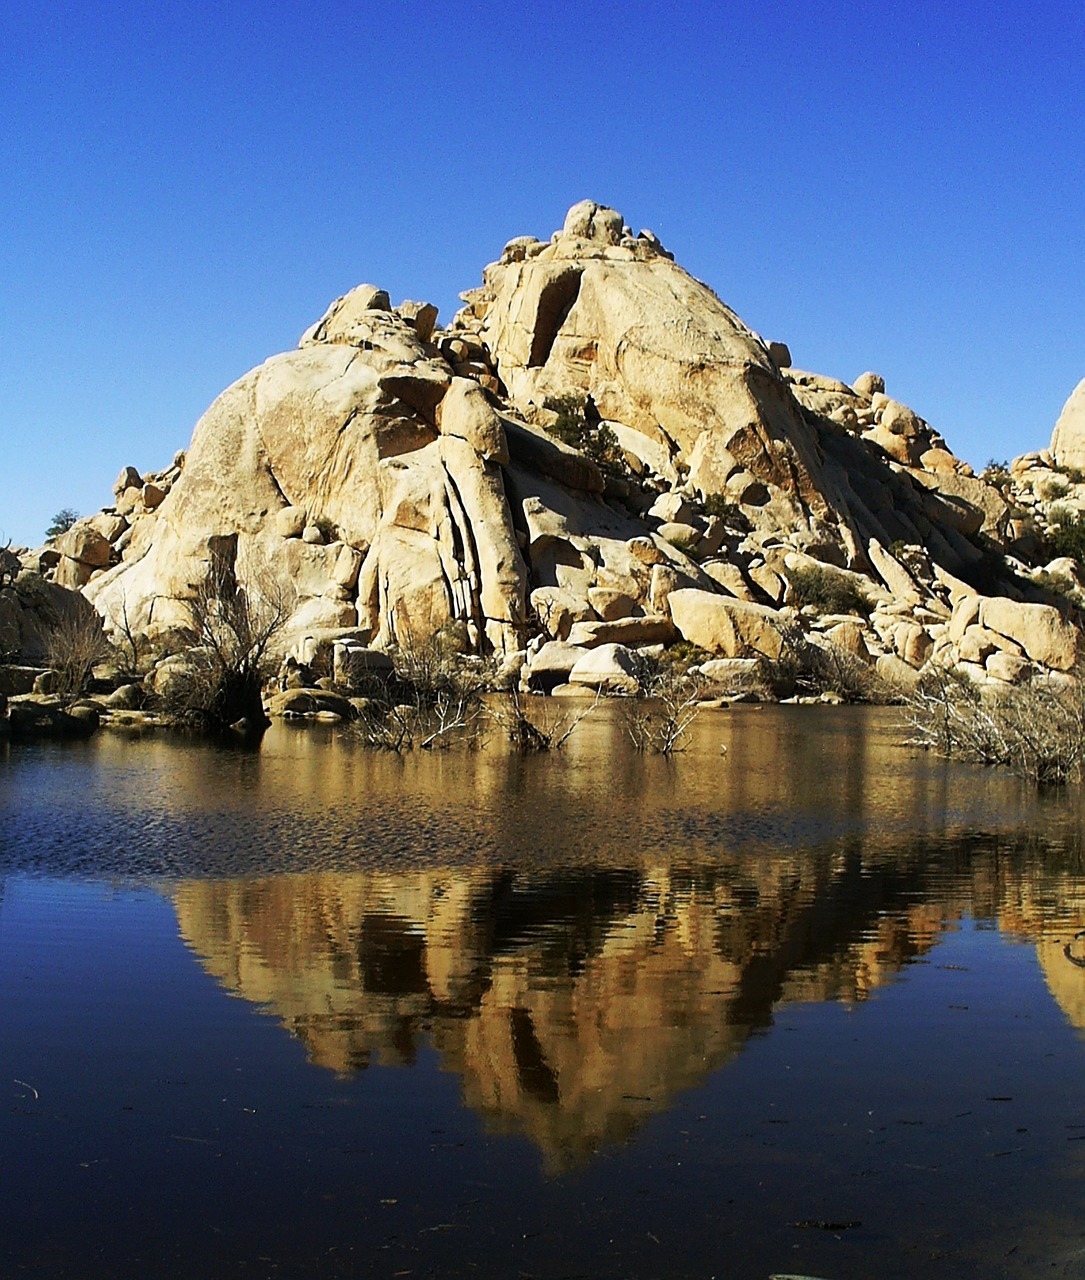 Barker Dam nature trail at Joshua Tree National Park